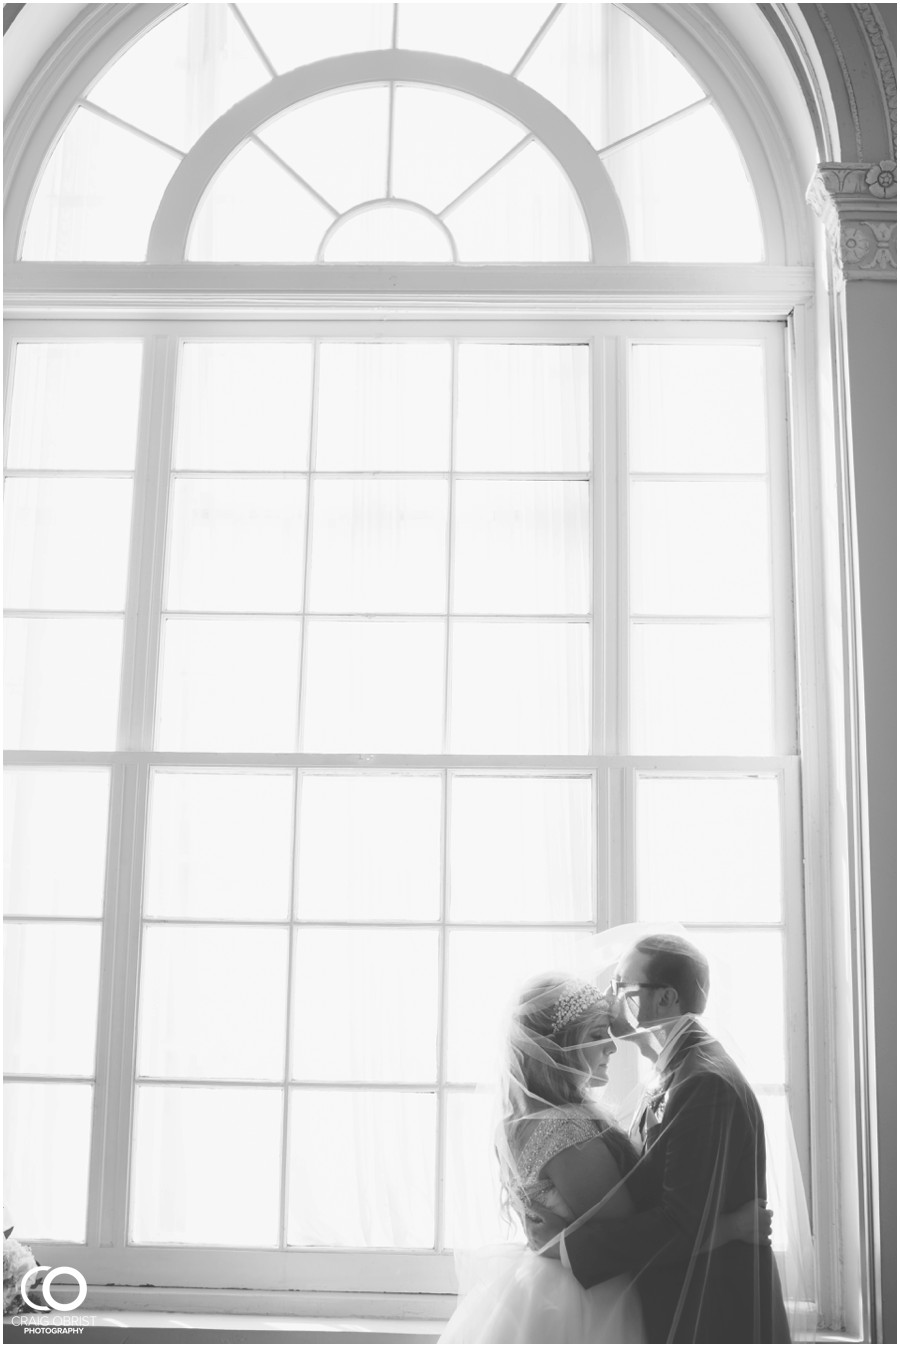 W Atlanta Biltmore Wedding Portraits_0076.jpg